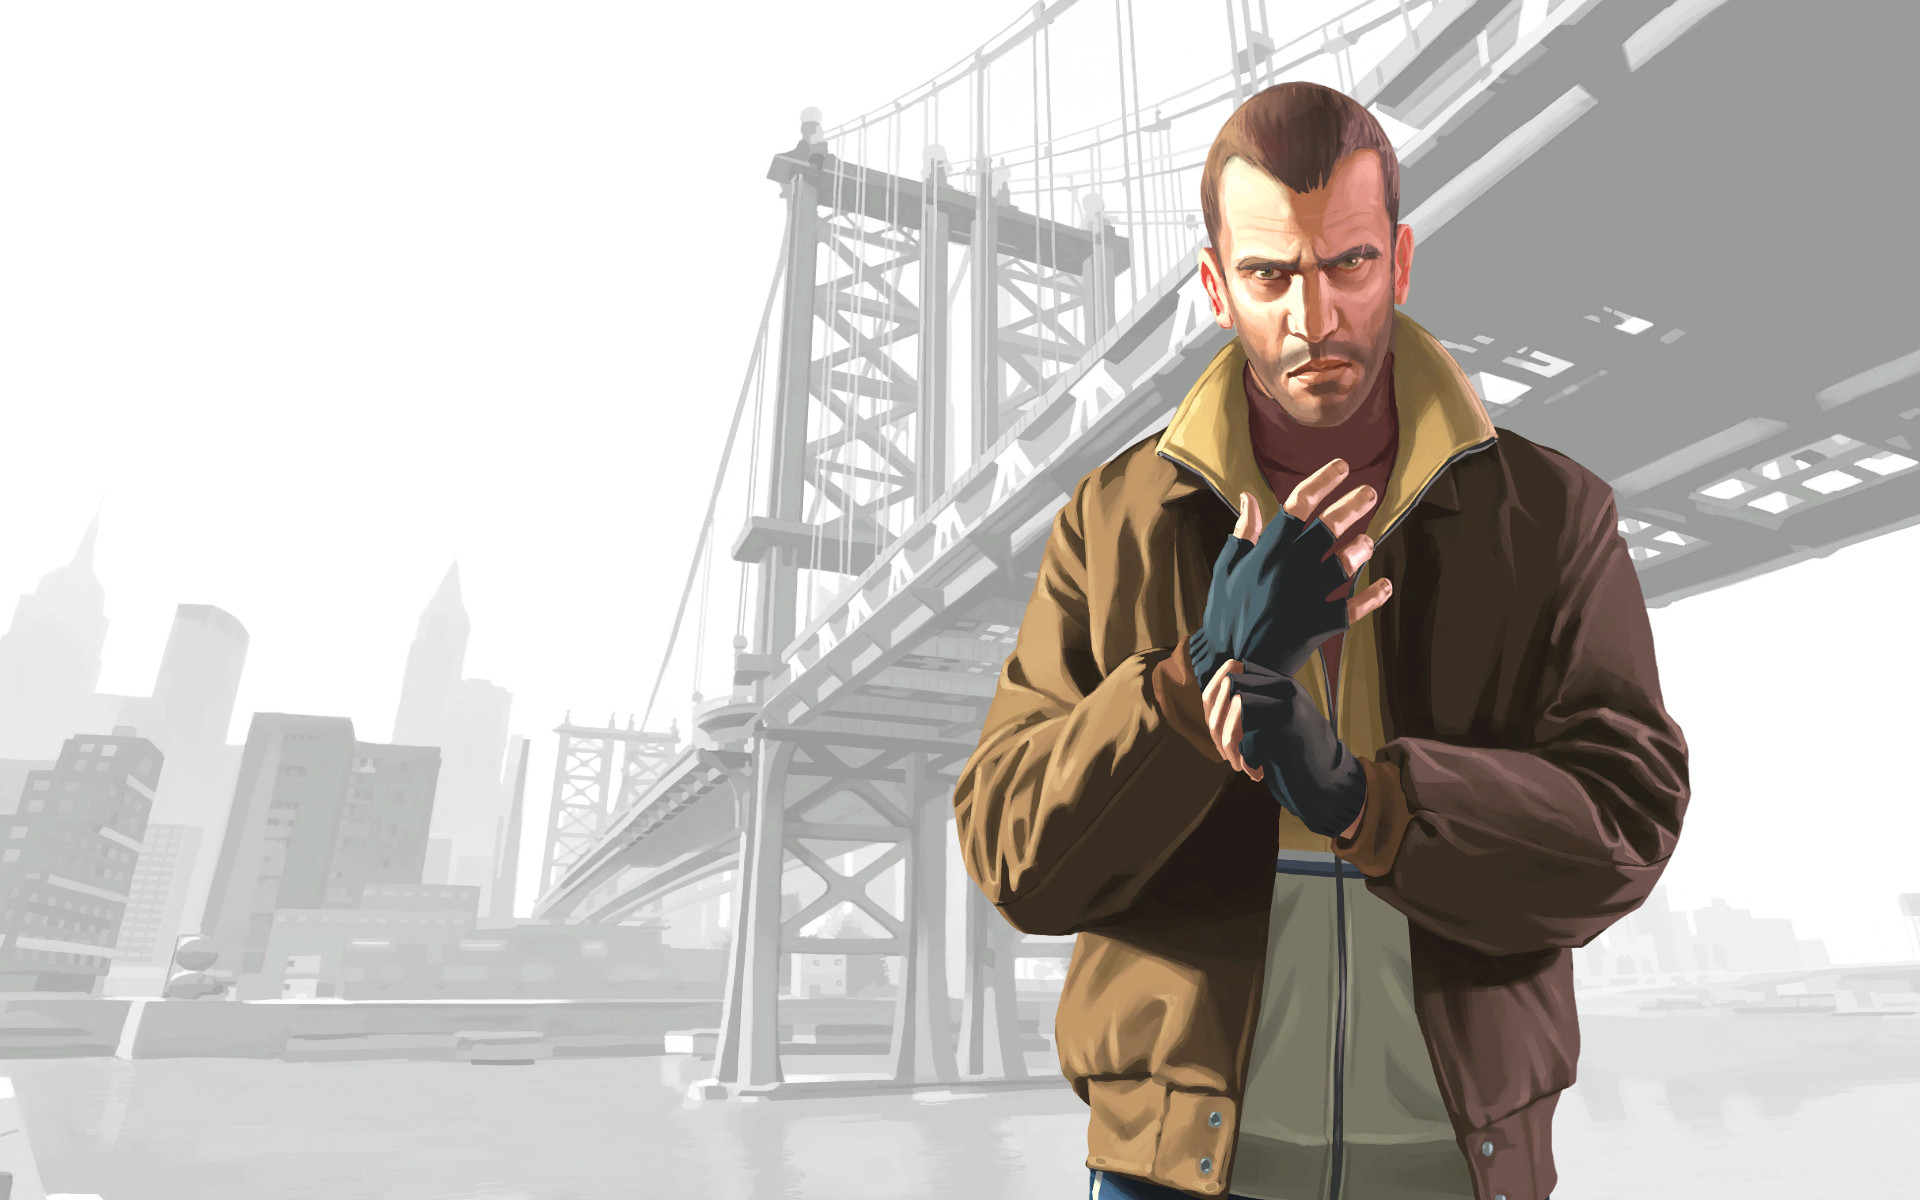 Res: 1920x1200, Niko Bellic.jpg